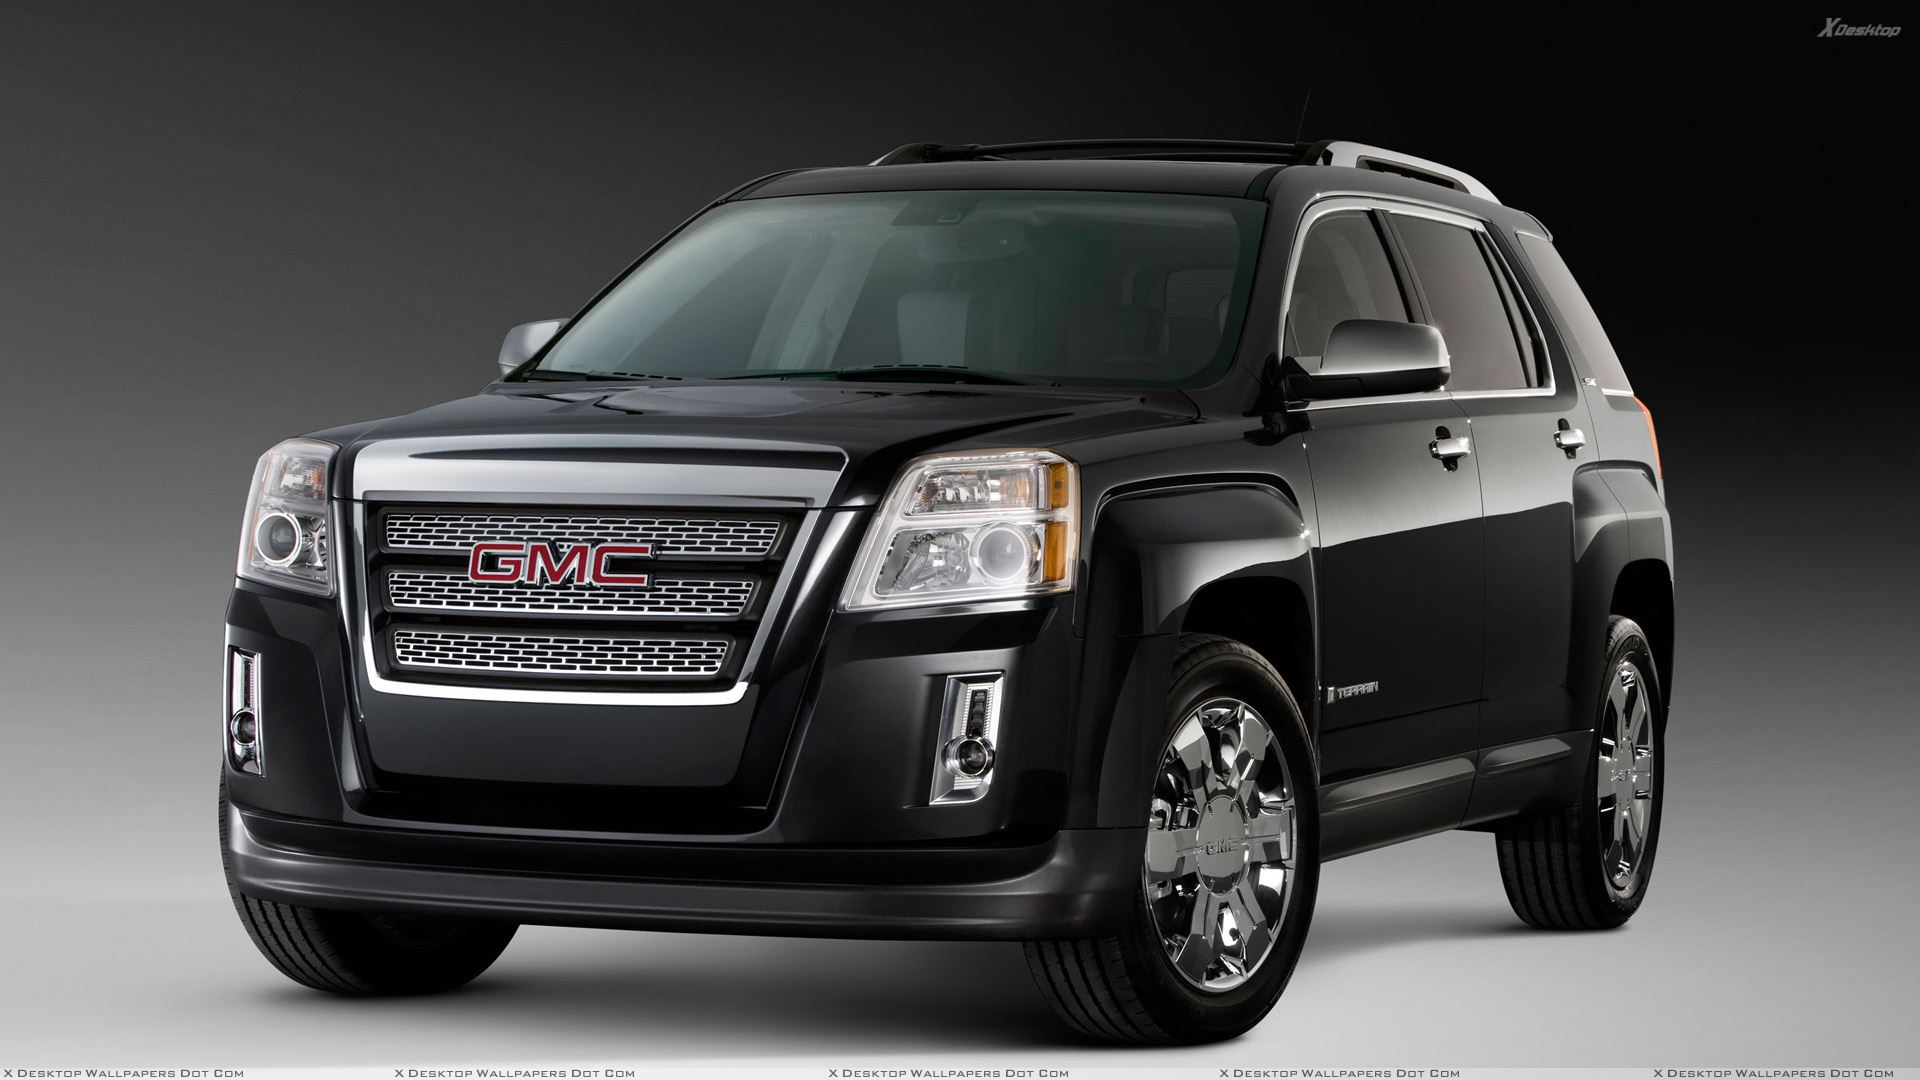 gmc terrain wallpapers photos images in hd. Black Bedroom Furniture Sets. Home Design Ideas